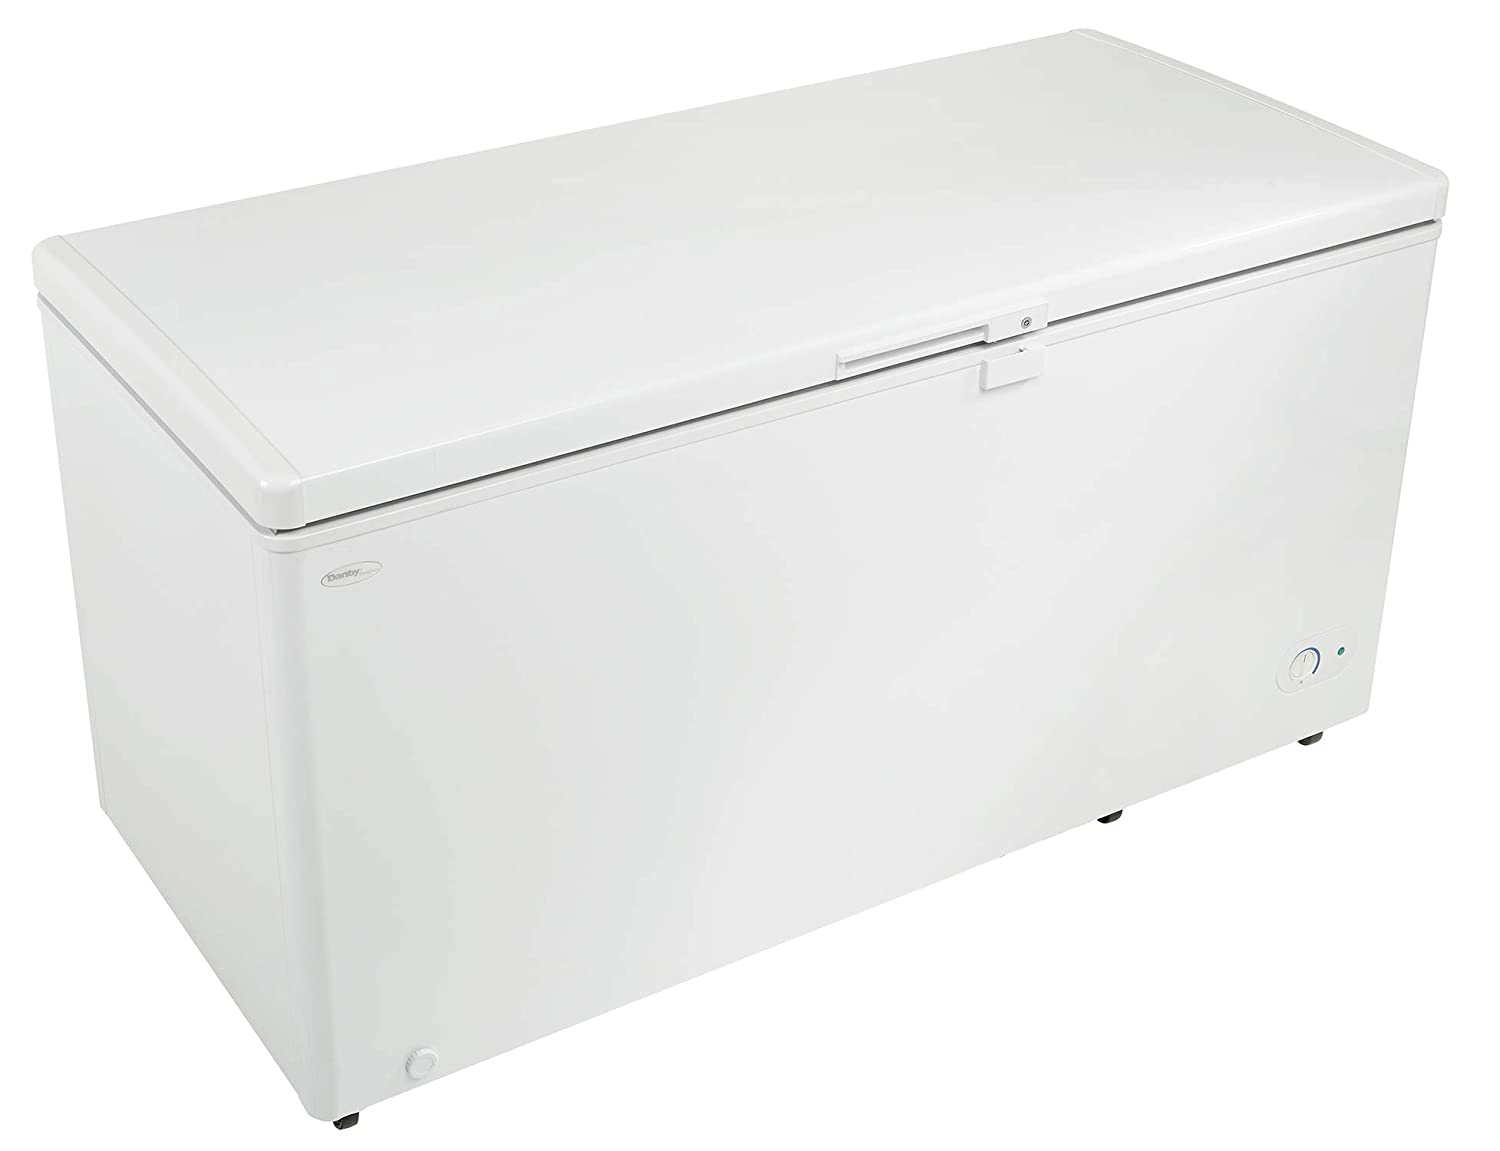 Danby DCF145A1WDD 61' Danby Designer Series Chest Freezer With 14.5 cu. ft. Capacity Front Mounted Thermostat Manual Defrost And Energy Efficient Interior White LED Light